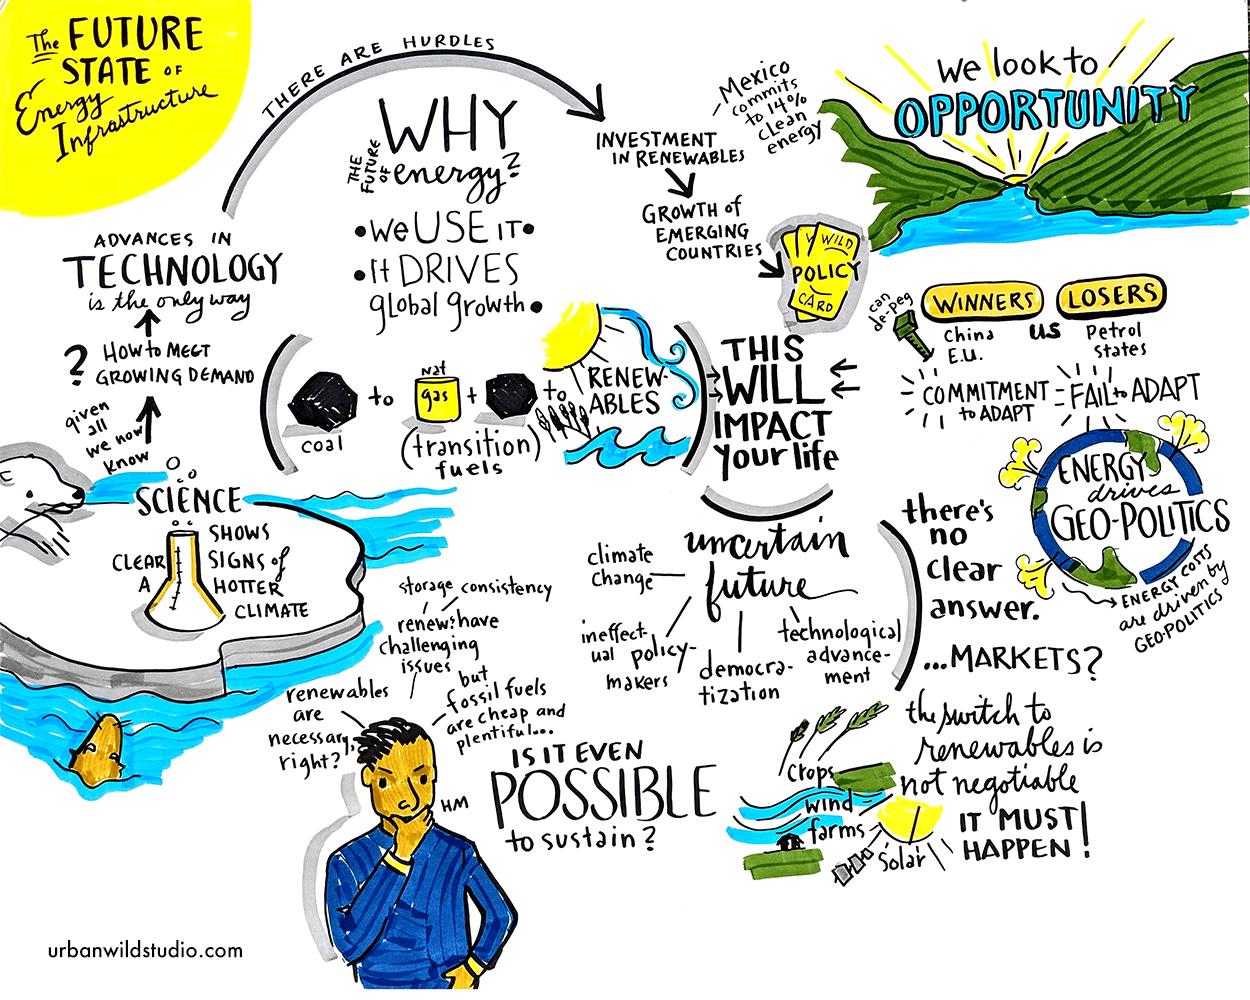 Copy of Focus Financial Partners Energy Infrastructure Graphic Recording Chicago Portland Traveling Visual Notes